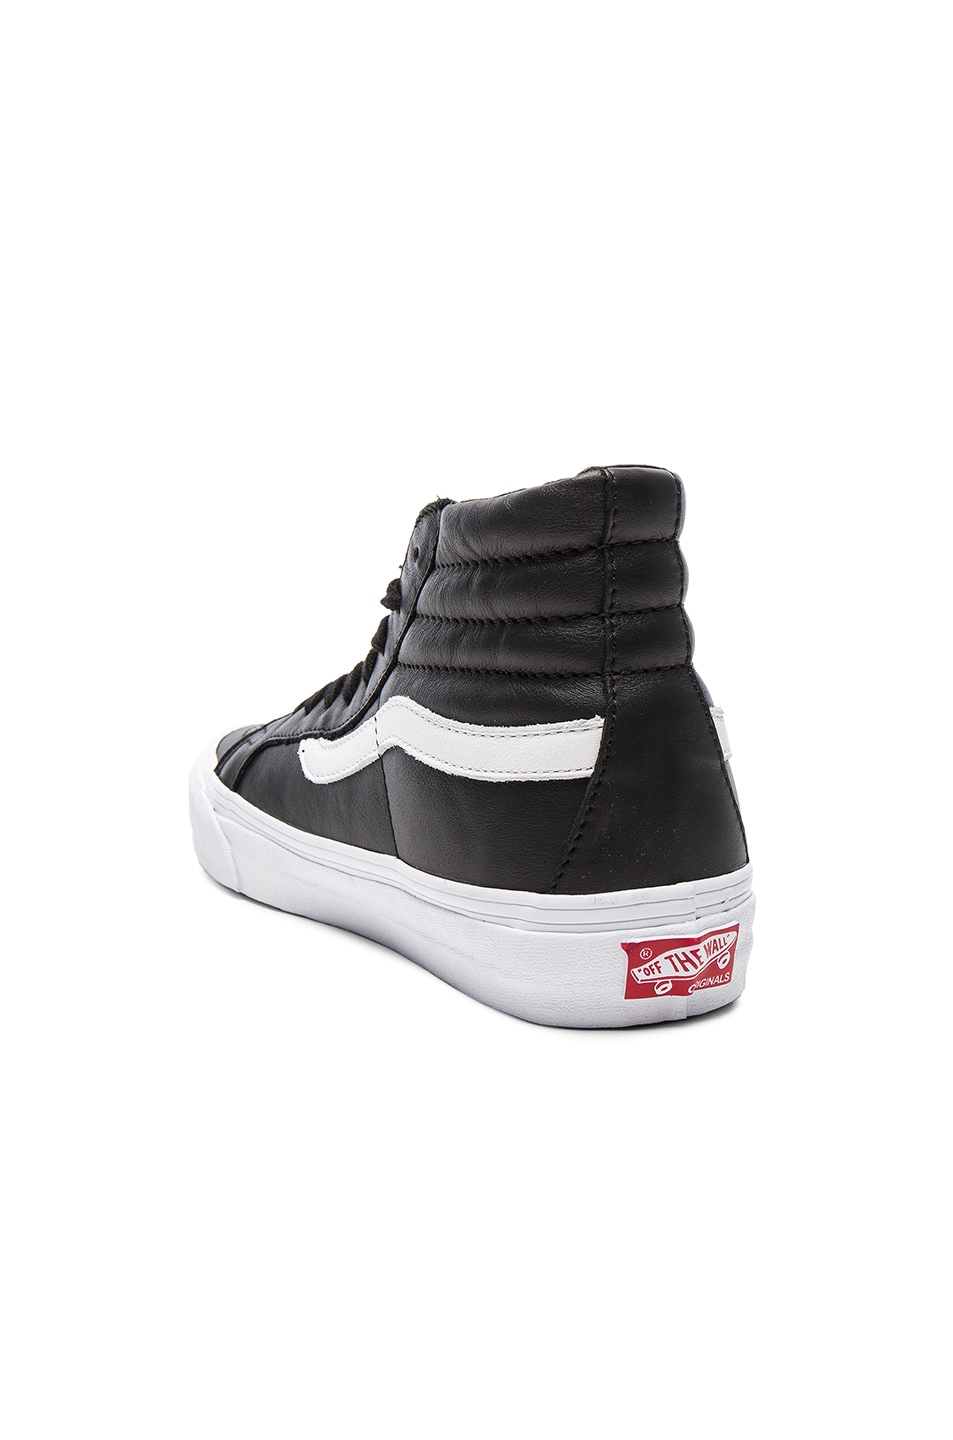 Image 3 of Vans Vault OG Leather SK8-HI LX in Black